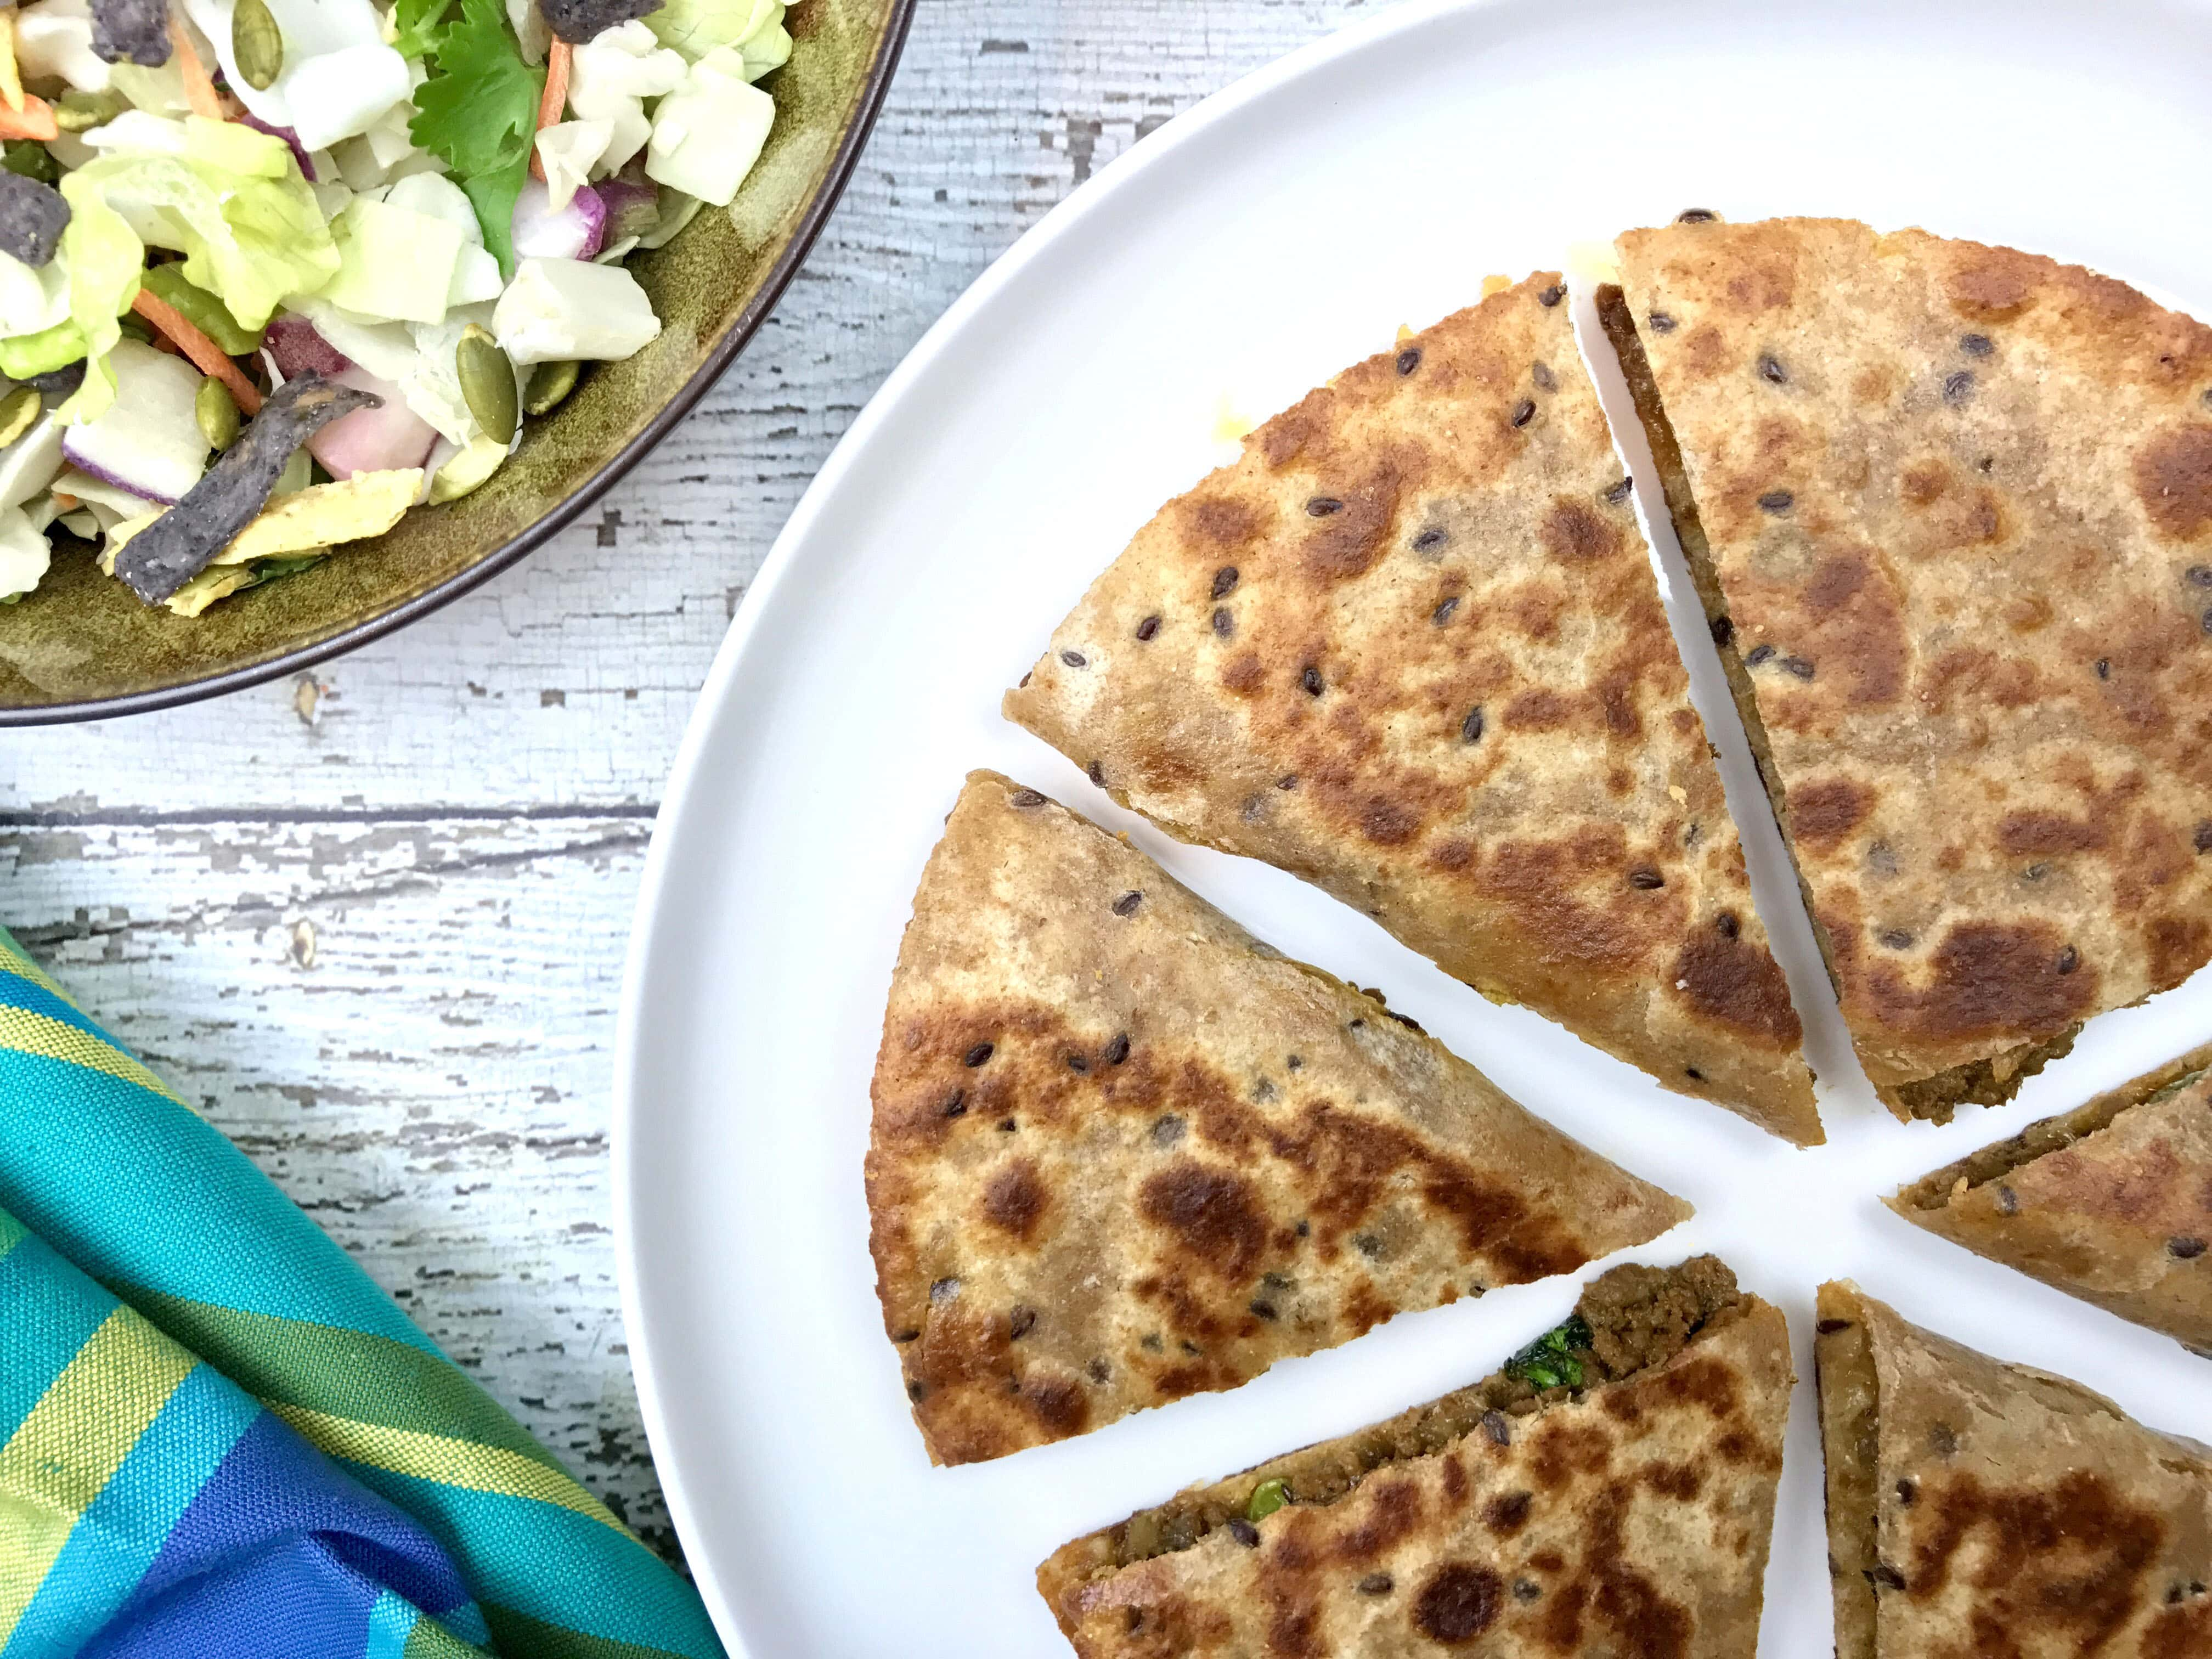 Keema Matar Quesadillas instant pot, by Spice Cravings. Keema MatarQuesadillas is grilled tortillas filled with cheese & minced meat (Keema) cooked with green peas seasoned with warm Indian spices (garam masala). #food #foodie #foodblogger #delicious #recipe #instantpot #recipes #easyrecipe #cuisine #30minutemeal #instagood #foodphotography #tasty #indian